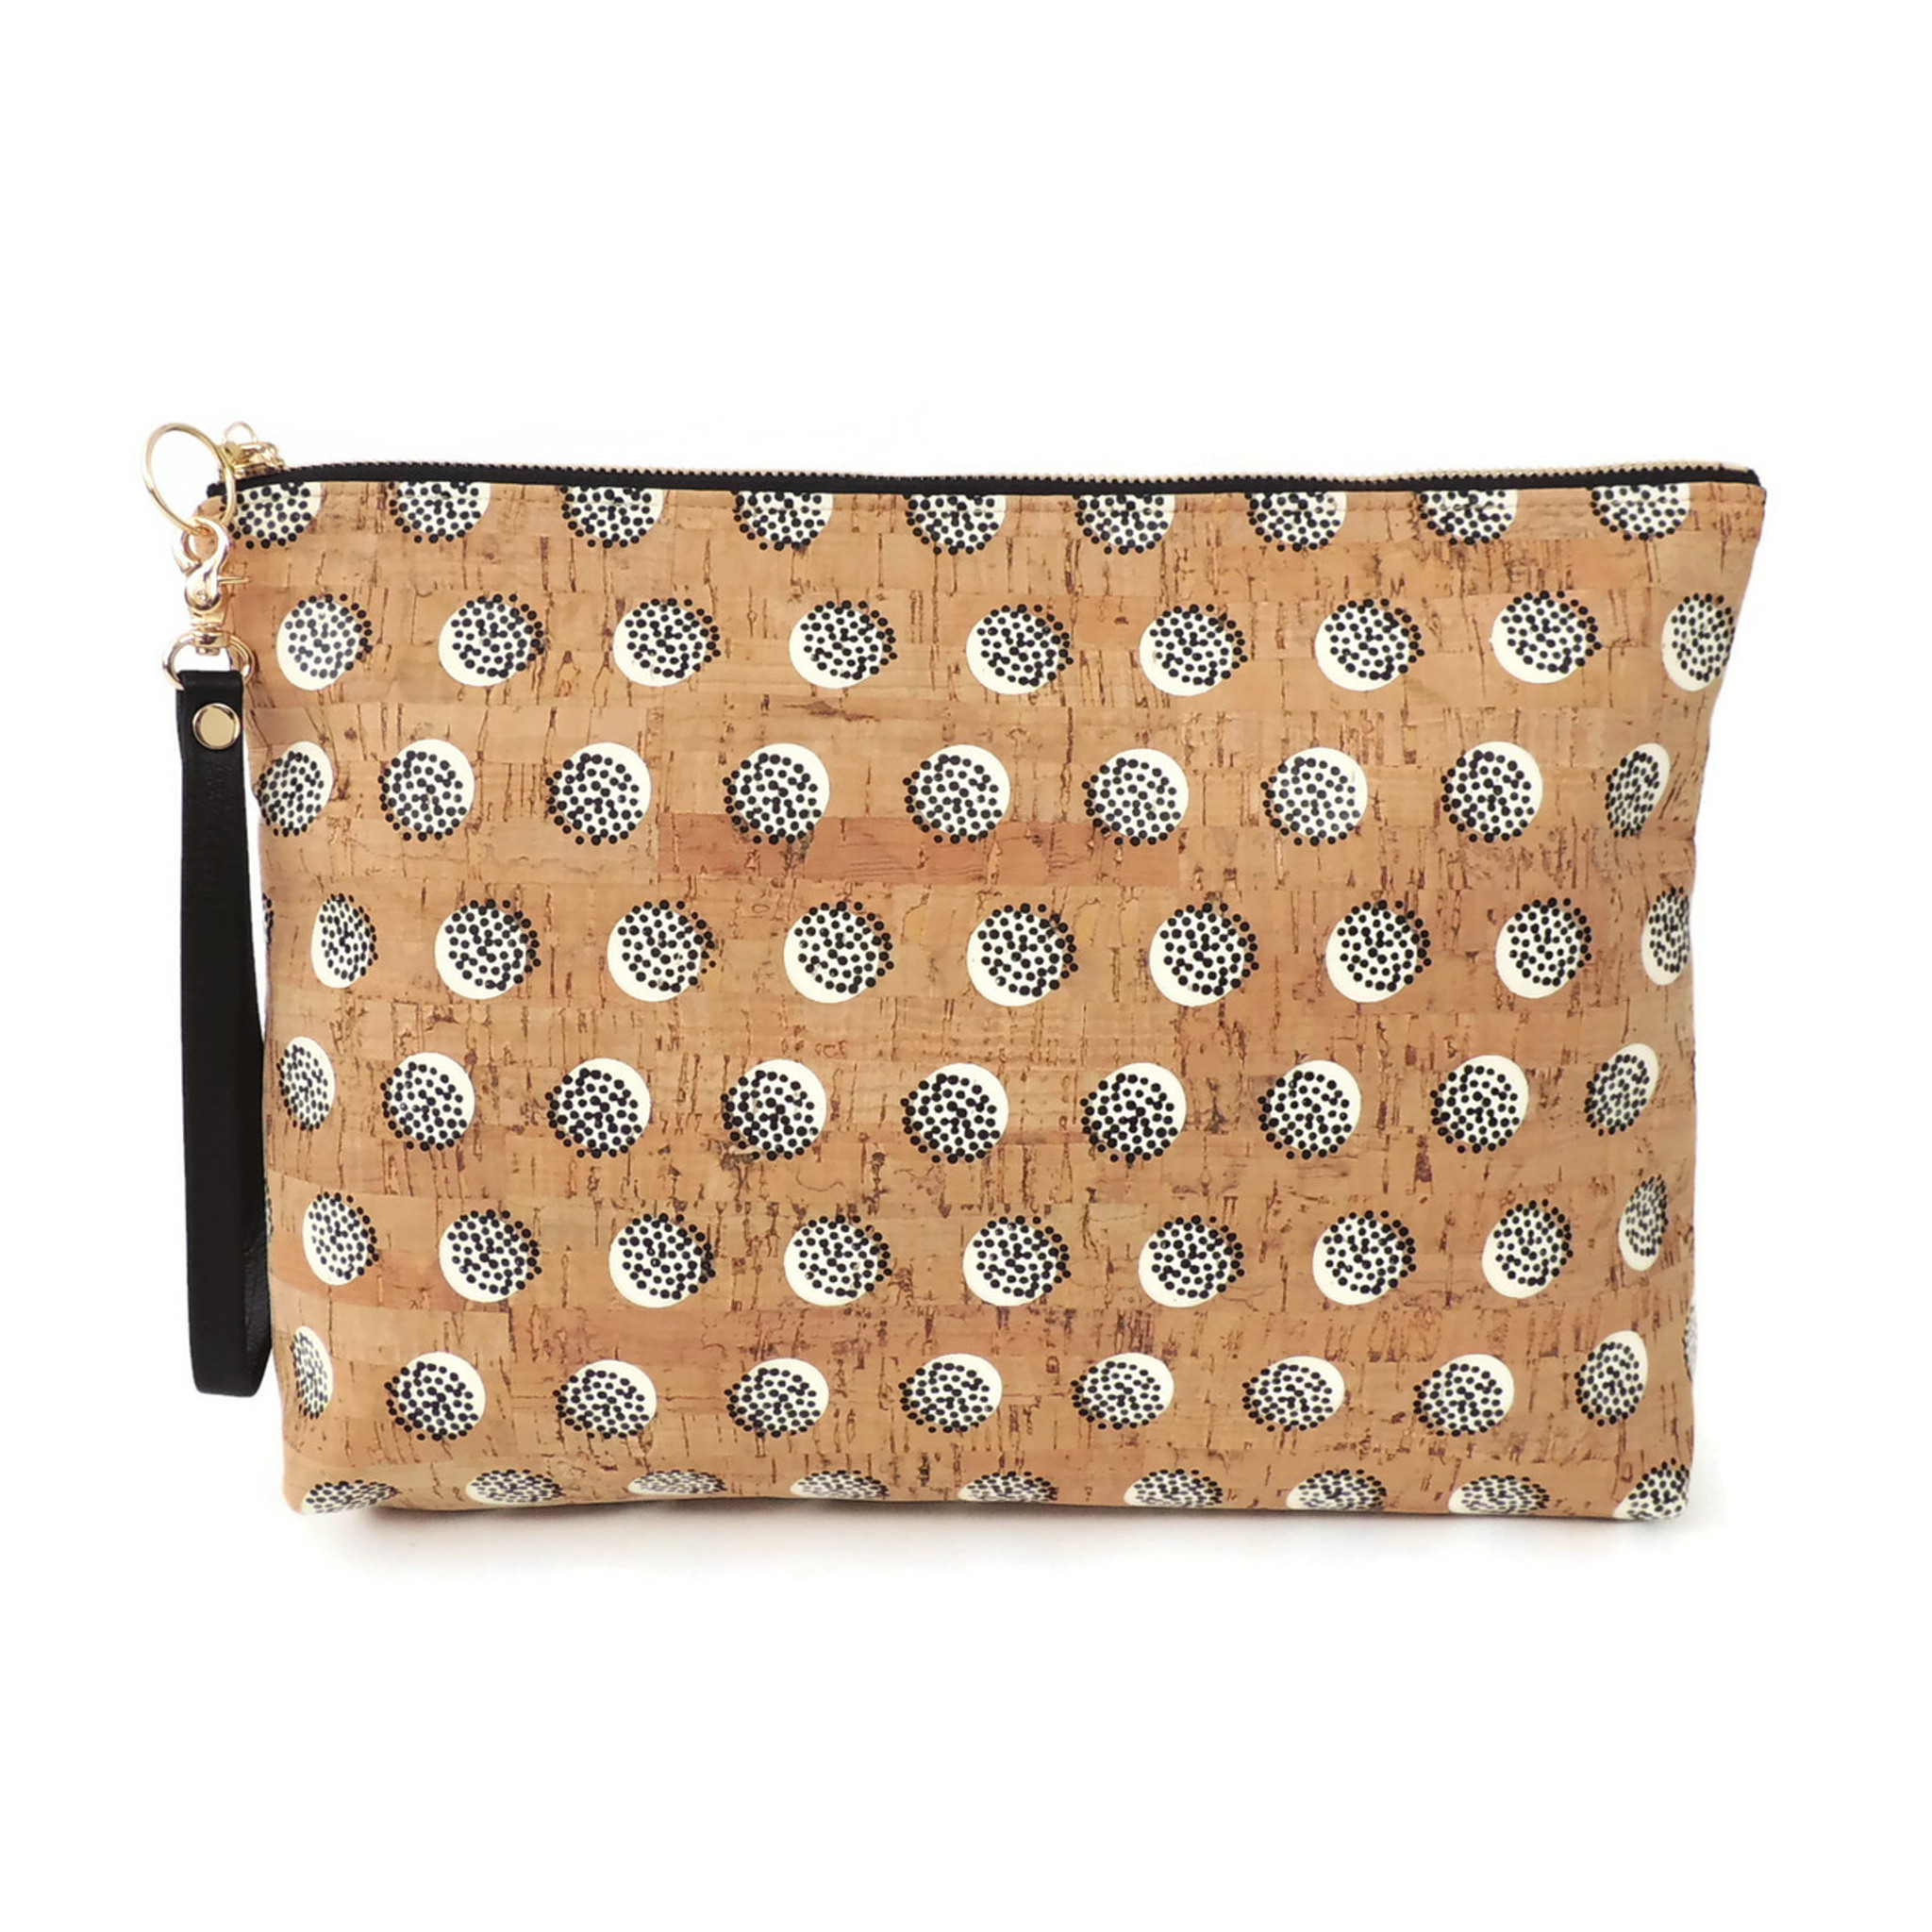 Carryall Clutch in Black Dandelion Cork